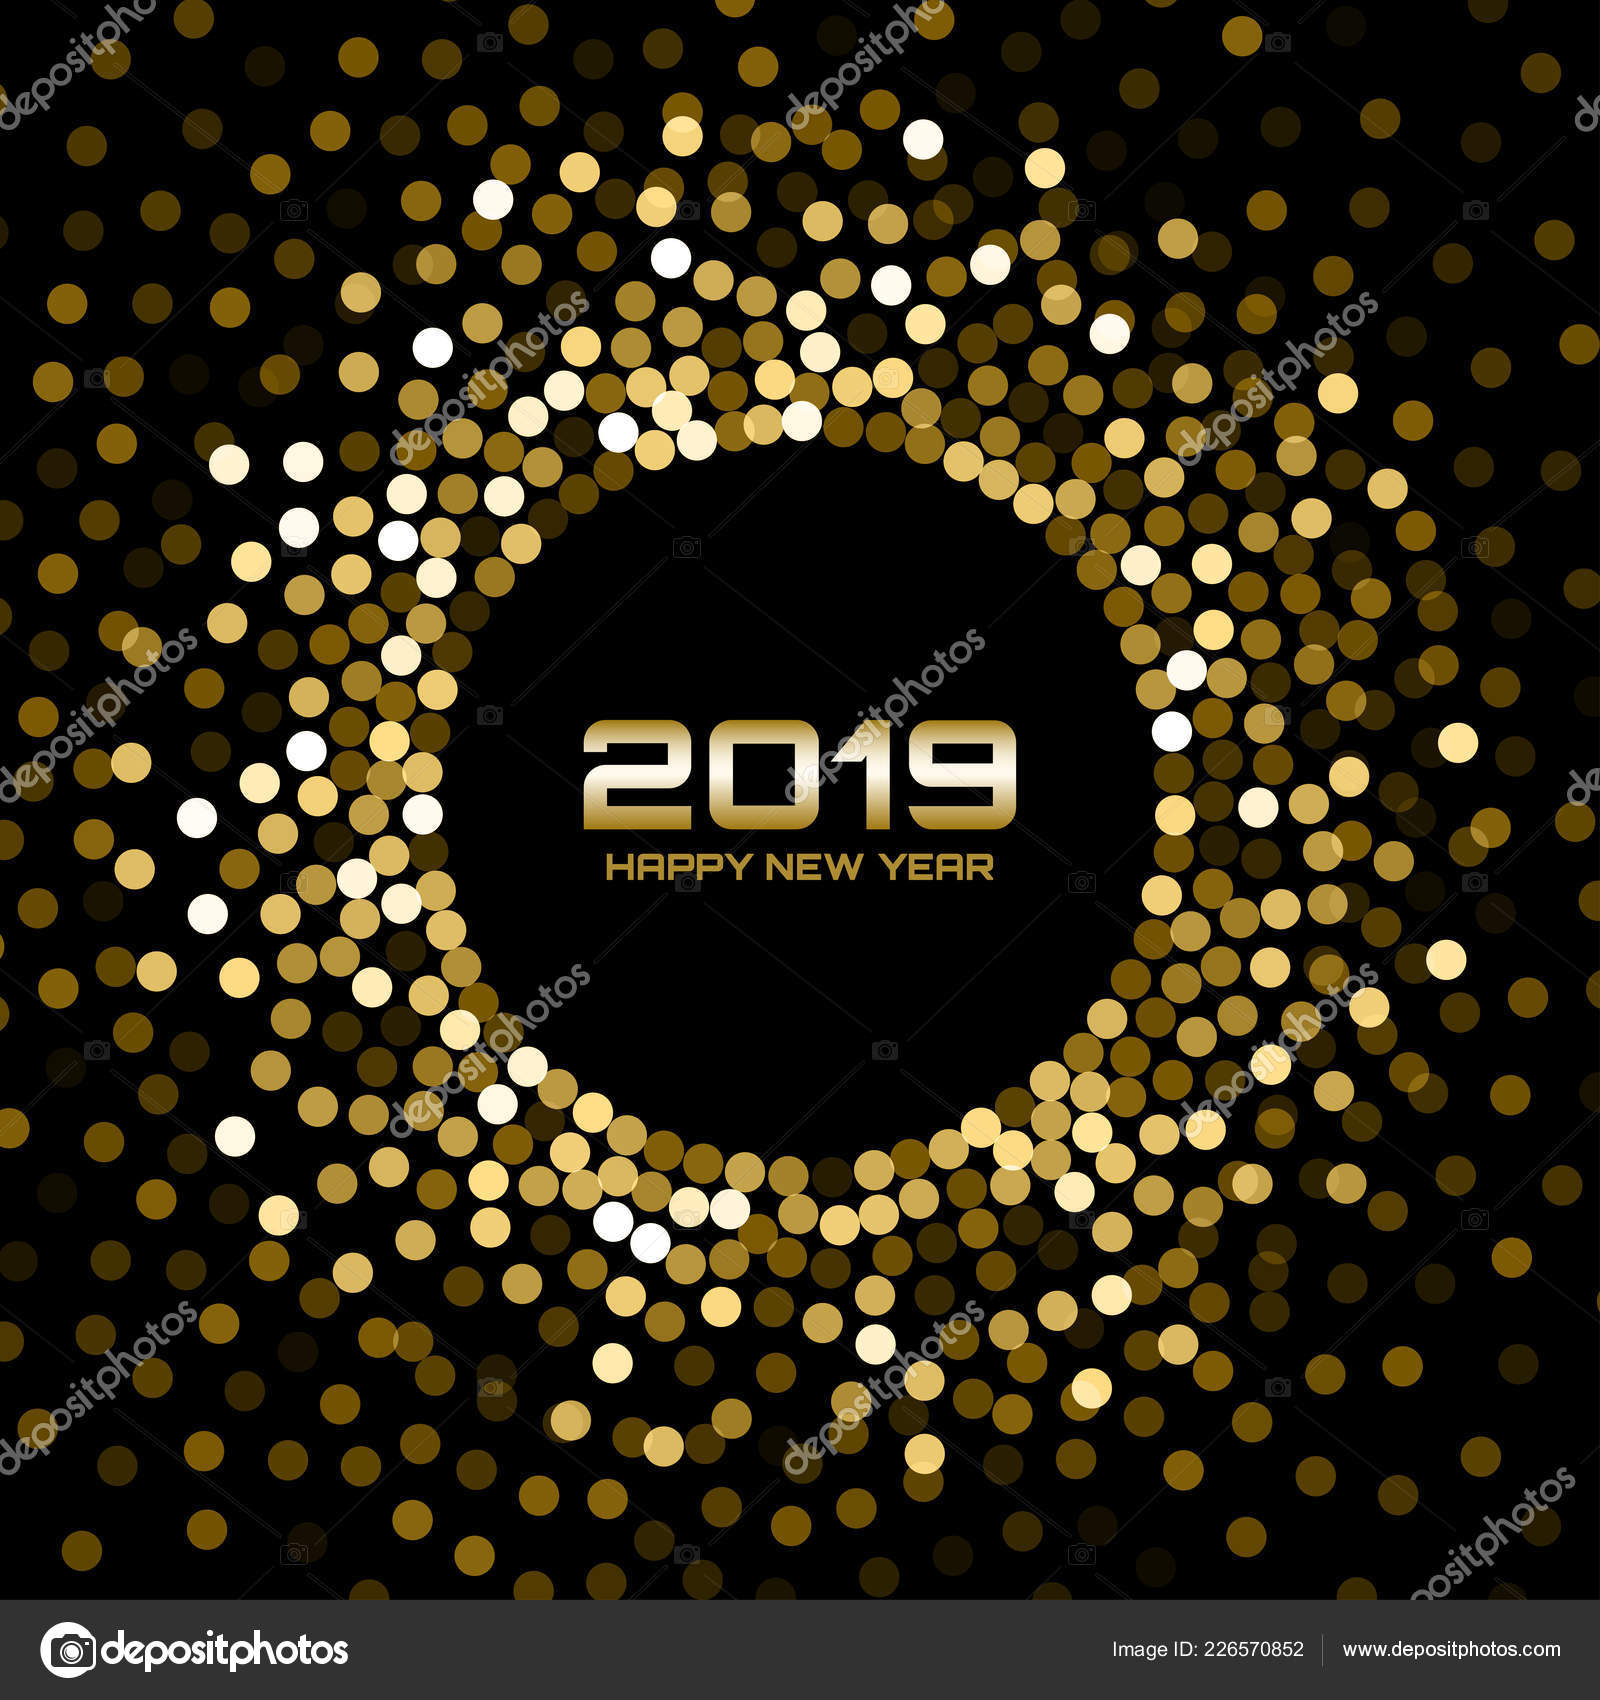 new year 2019 card background gold glitter paper confetti glistening golden disco lights